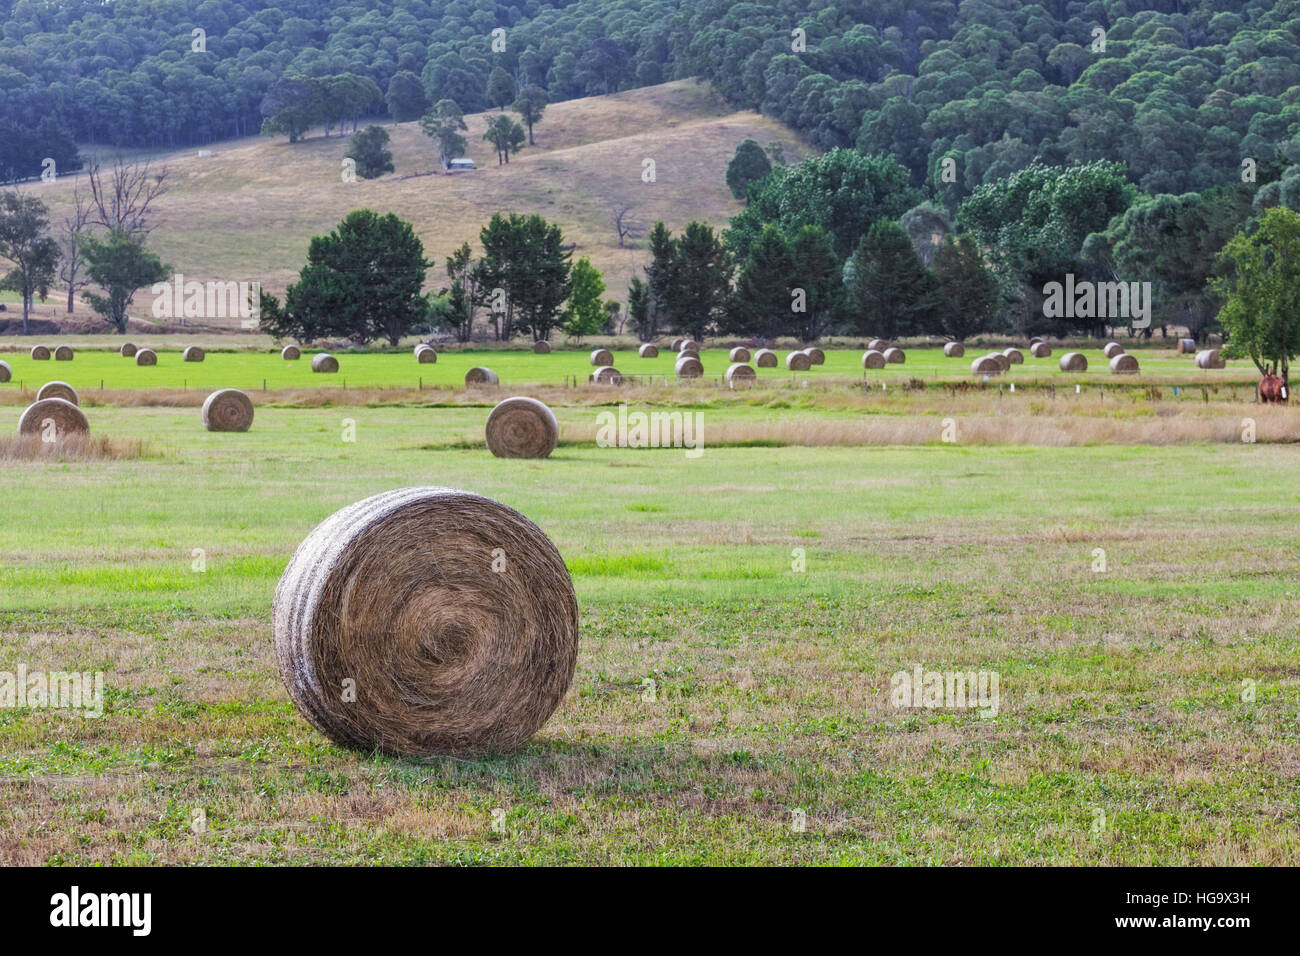 Round hay bales in a field after harvest on hot summer day - Stock Image